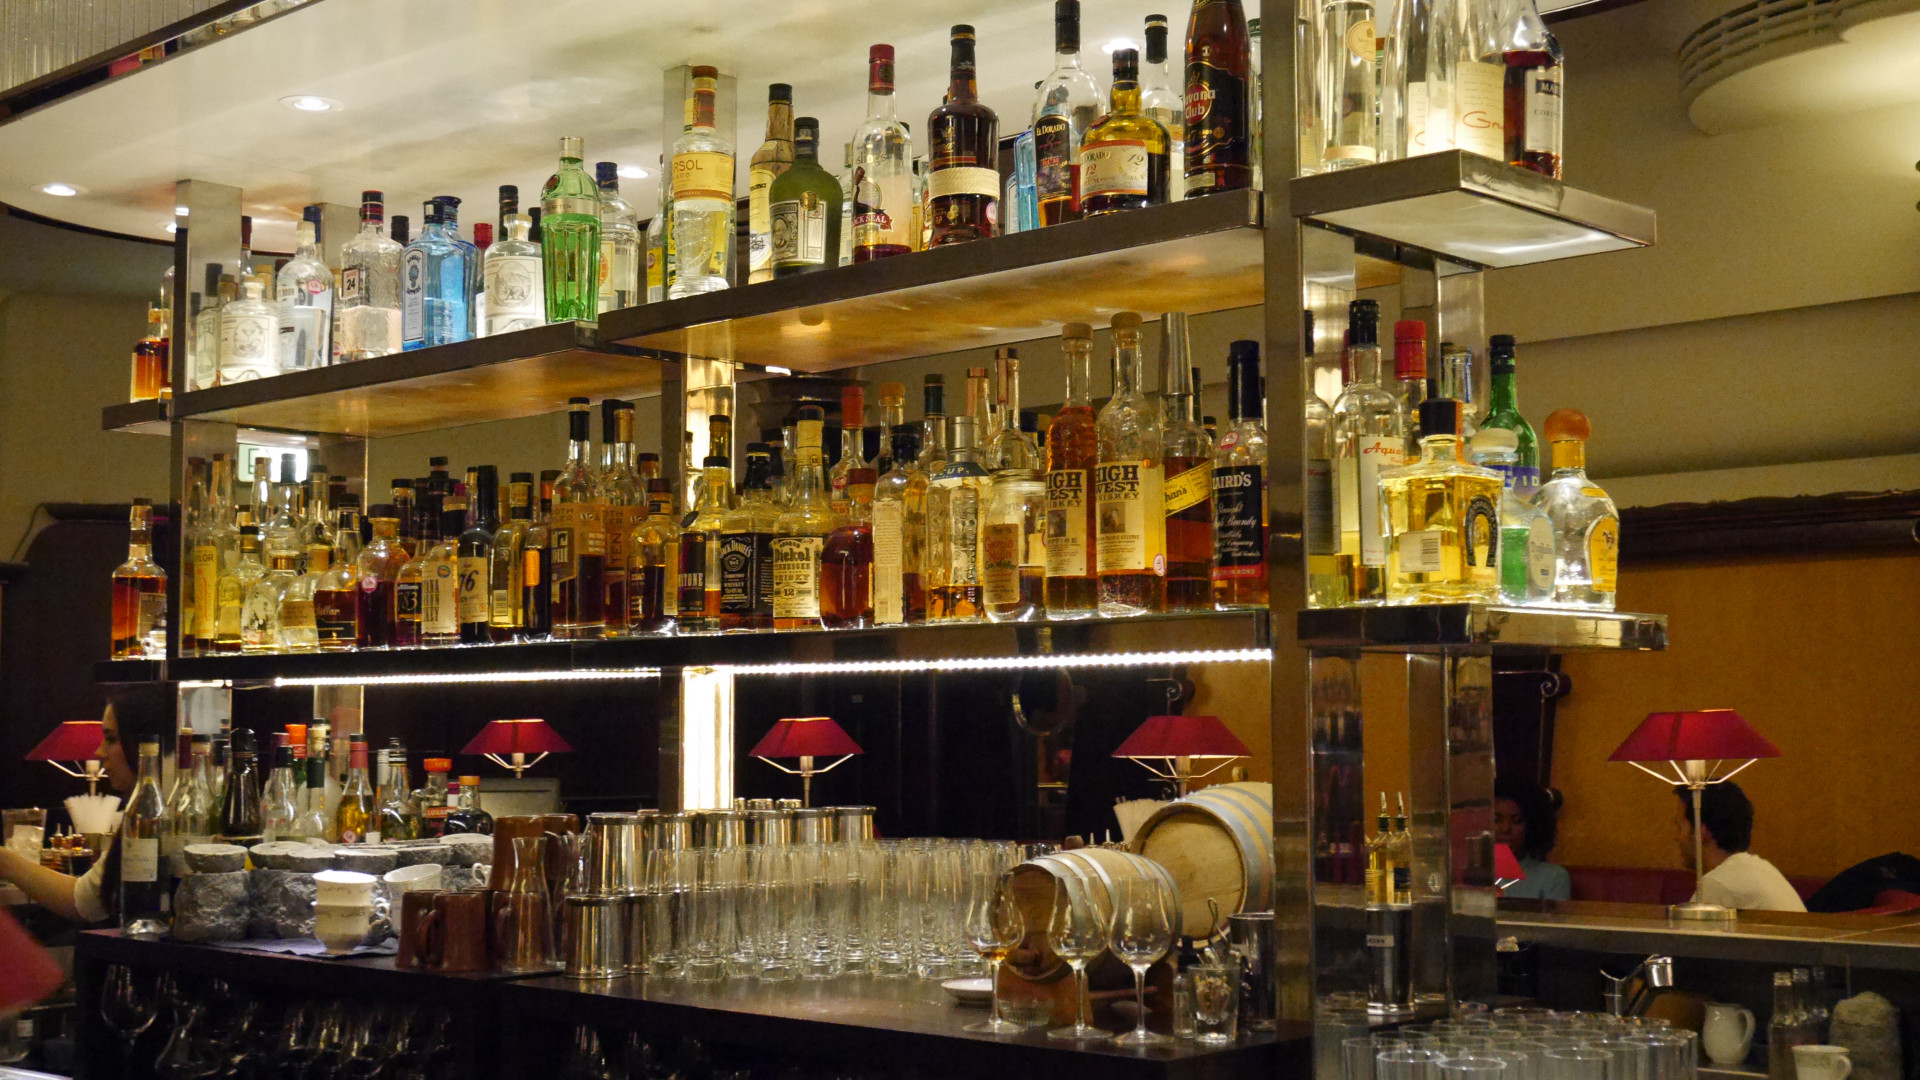 The restaurant benefits from a well-stocked back bar